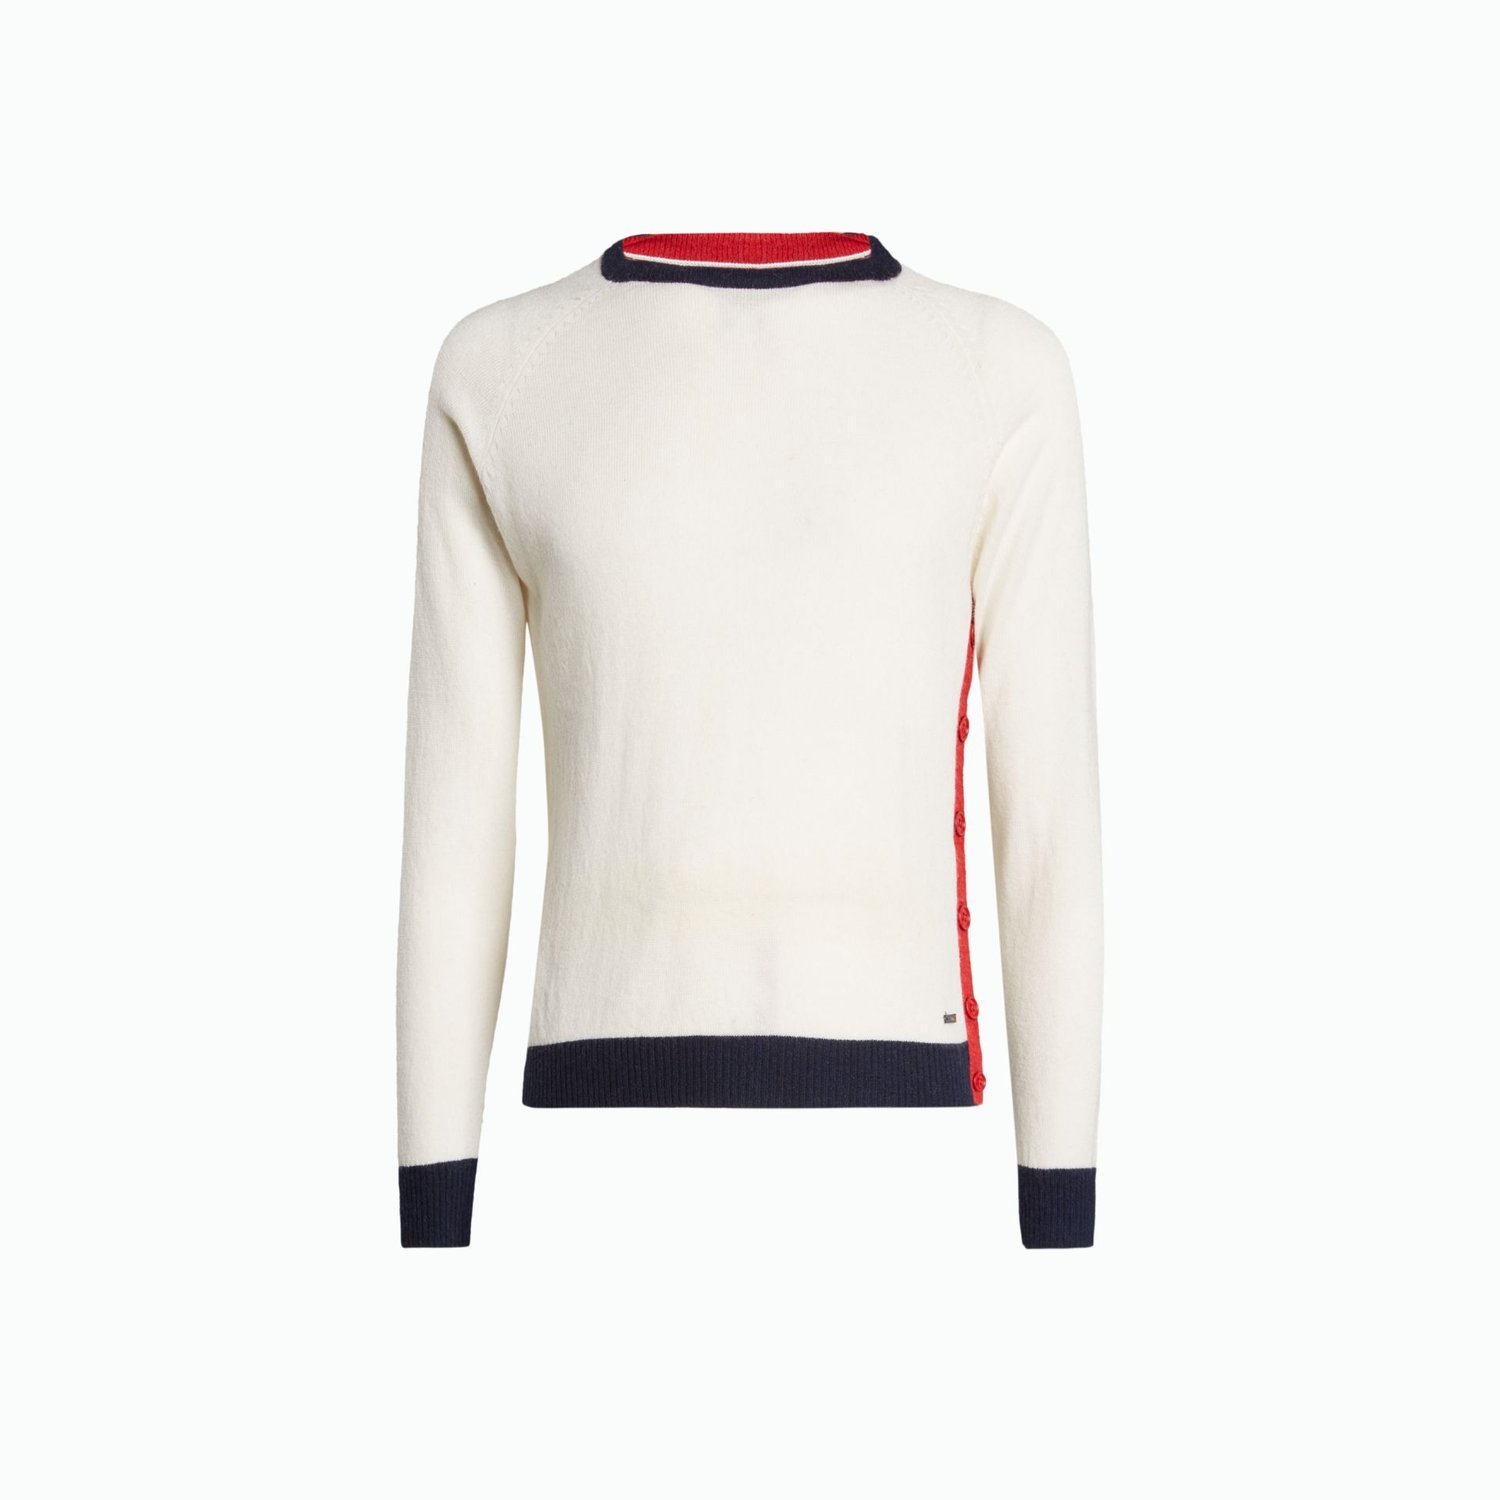 B118 Jumper - White / Navy / Red